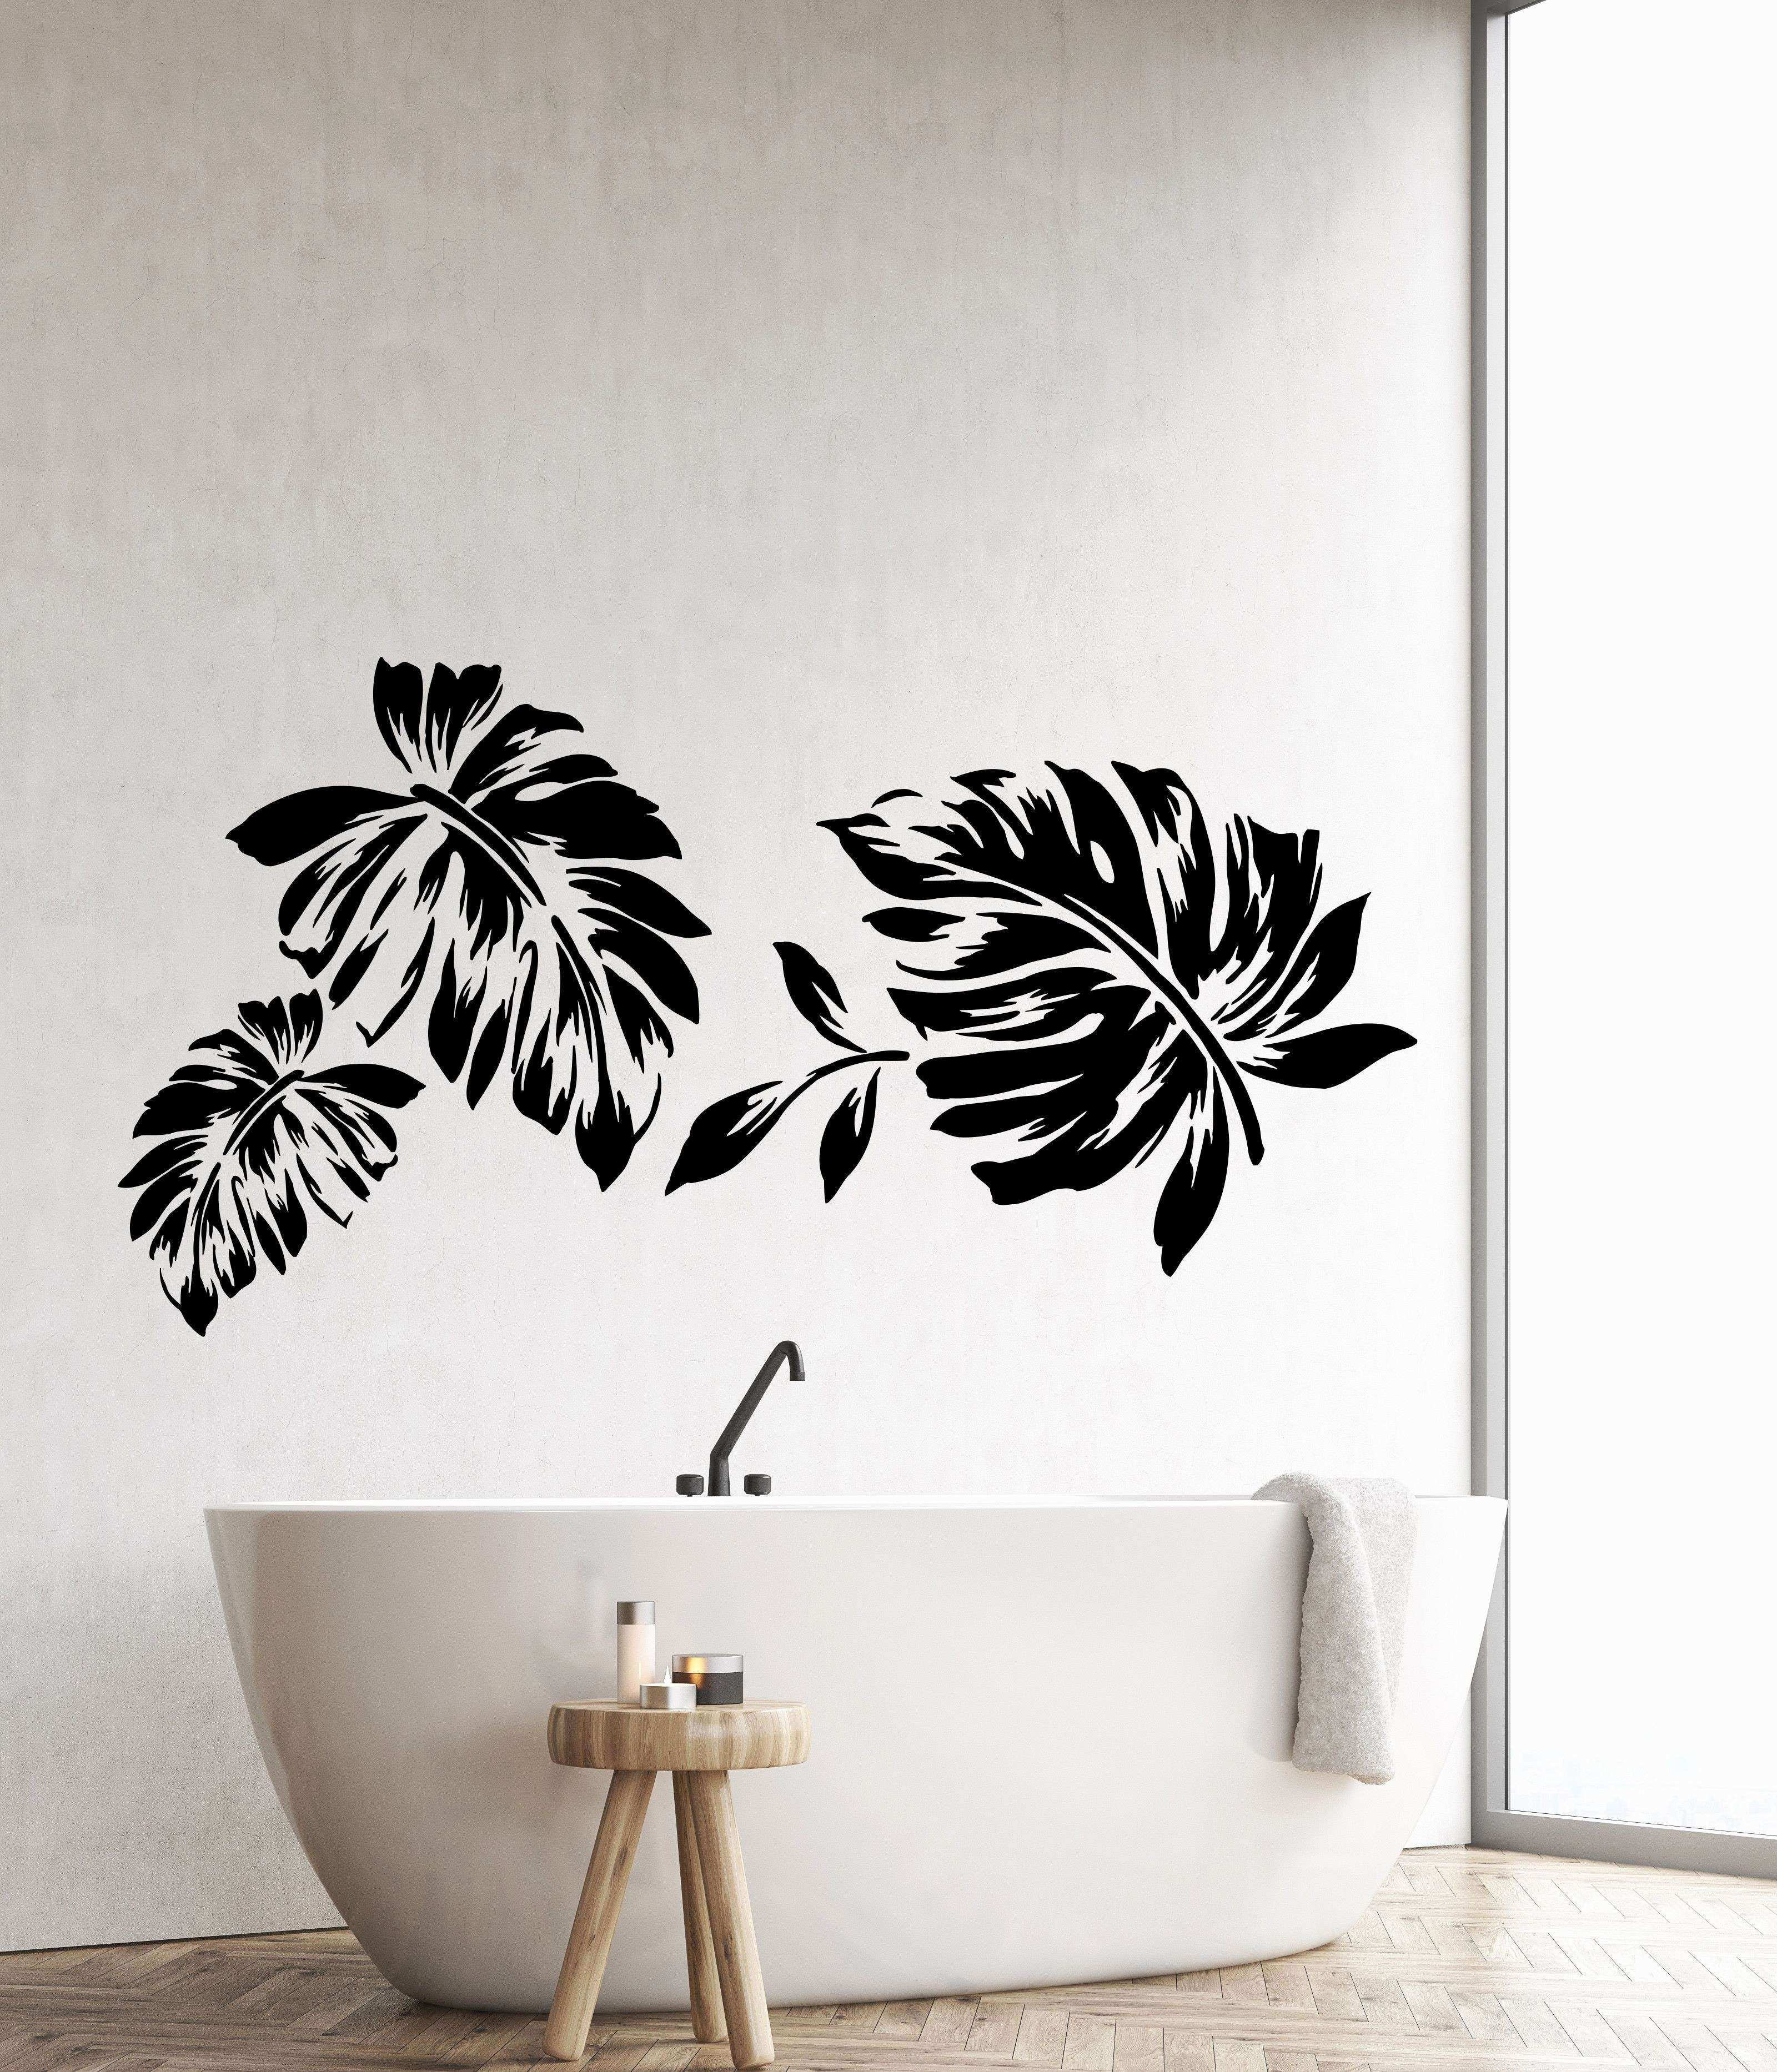 Custom Wall Stickers Beautiful 35 Inspirational How to Make Your Own Wall Decals